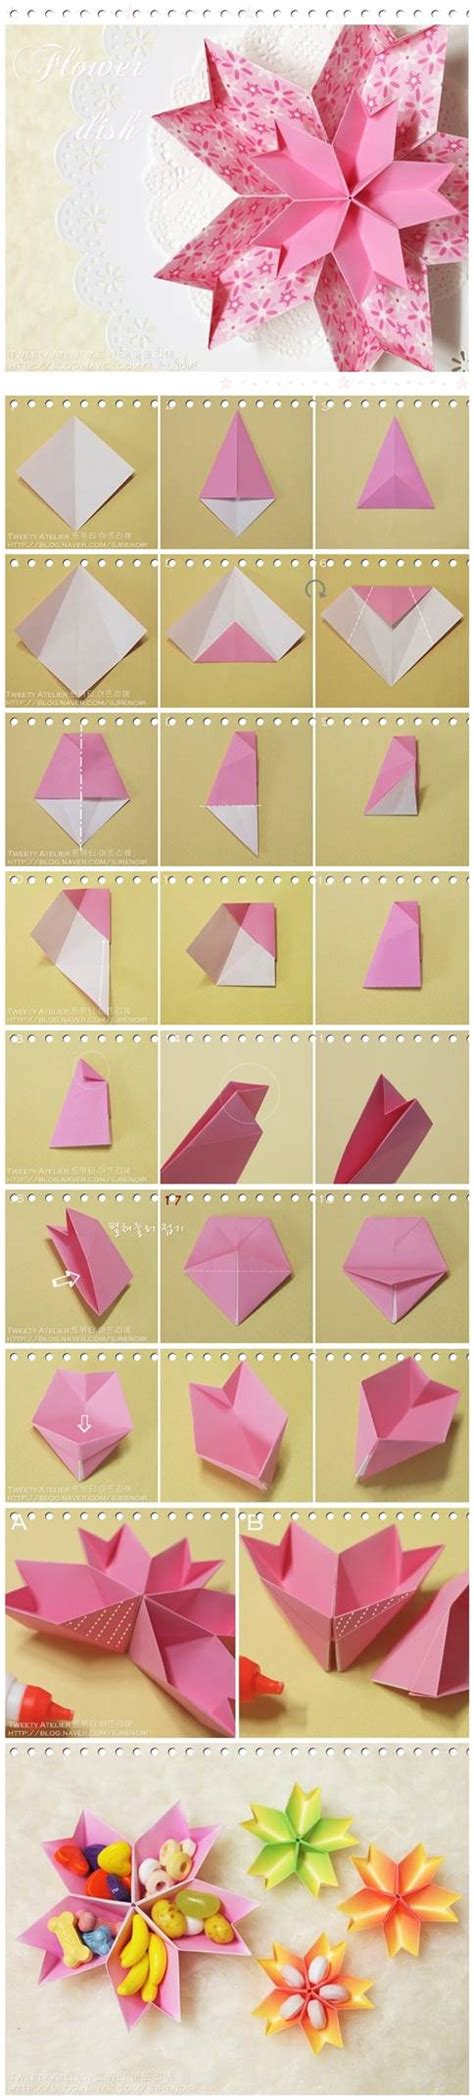 How To Make A Paper Flower Step By Step Easy - how to make origami flowers step by step breeds picture